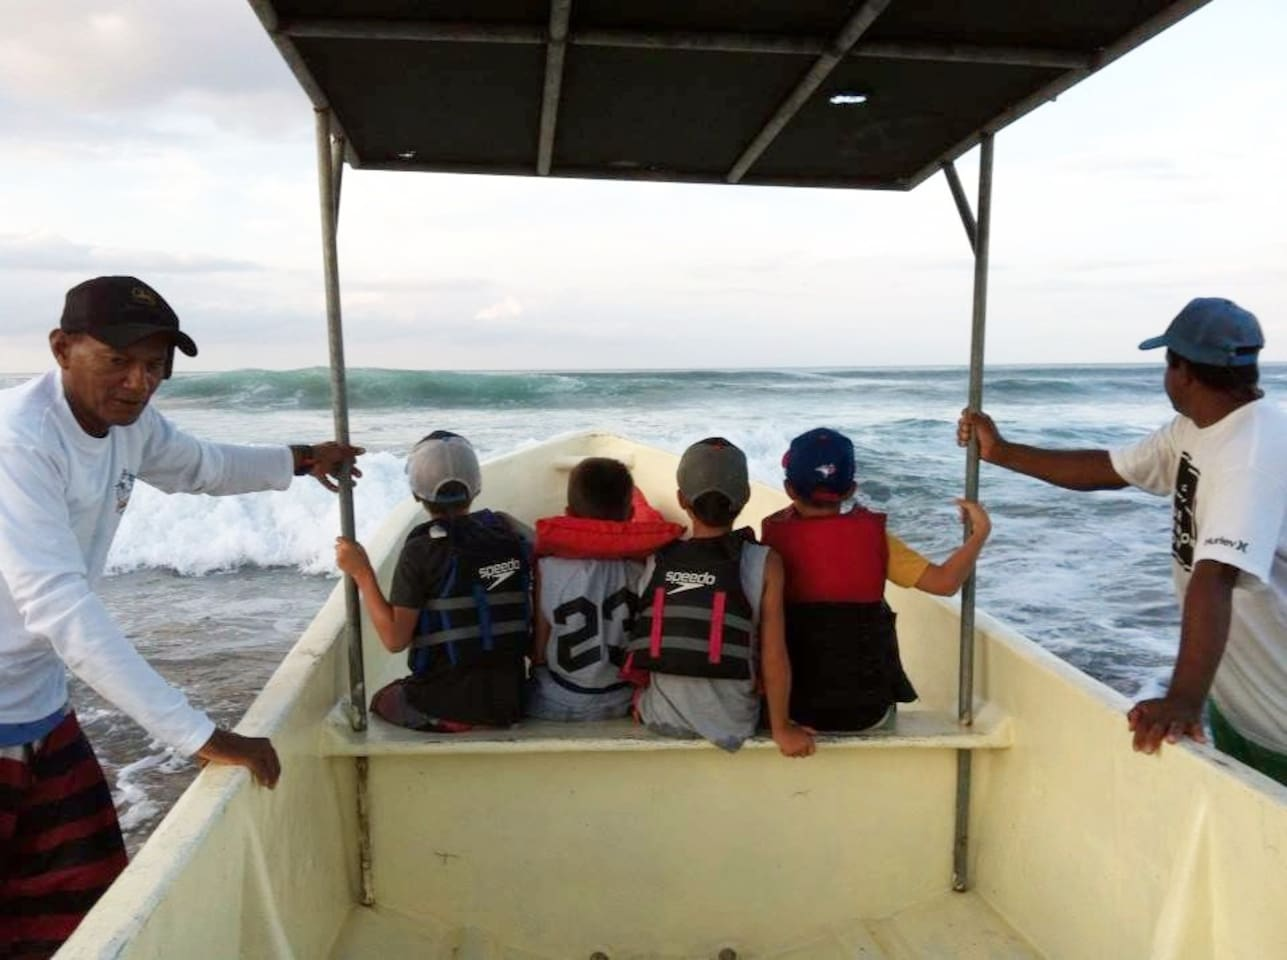 Boat trips are offered to Playgrounds, Lance's Left, Manzanillo Point or the outer reef!    Or take a fishing trip to catch some local delicacies like Red Snapper, Mahi Mahi and possible Ahi Tuna if you're lucky!  And see dolphins, whales or turtles?